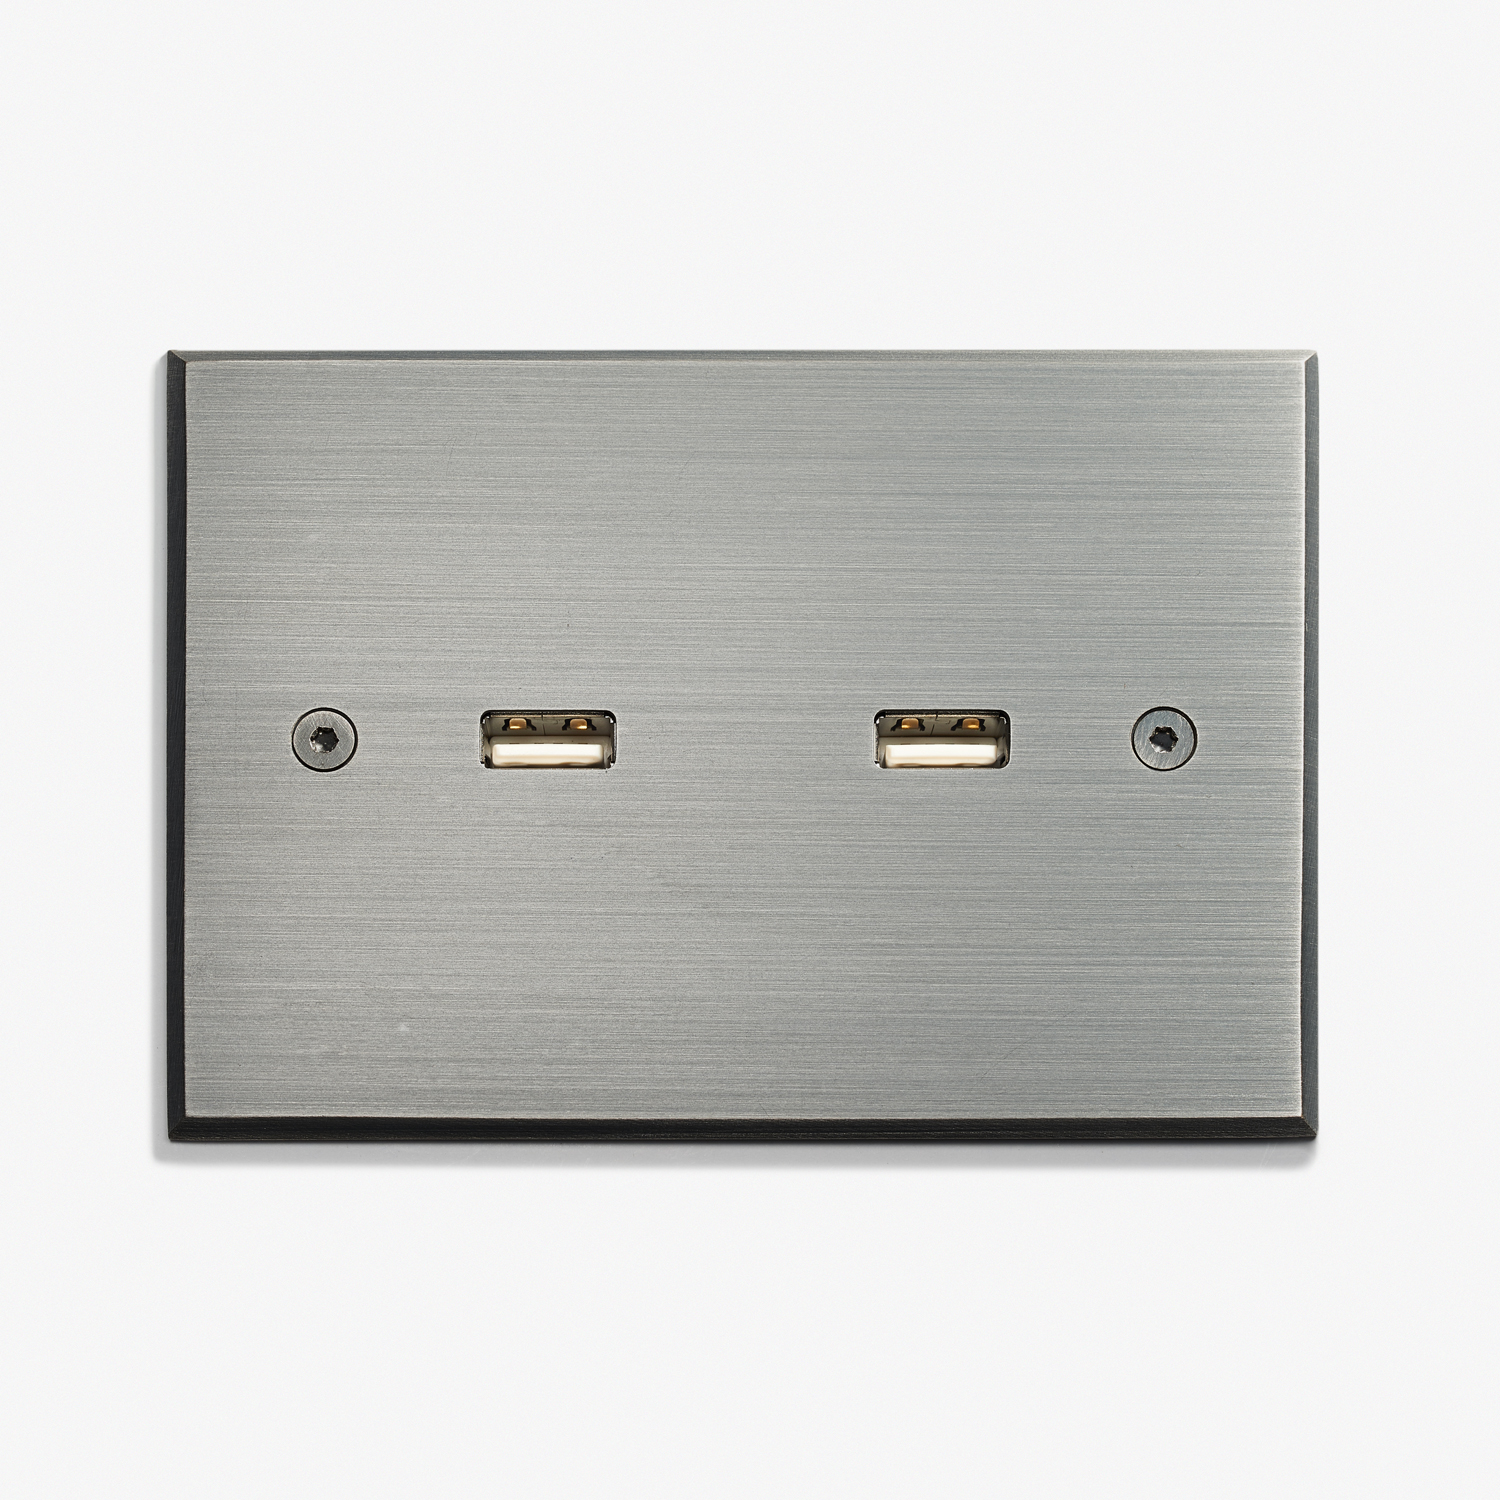 117 x 82 - 2 USB - Visible Screws - Argent Patiné.jpg